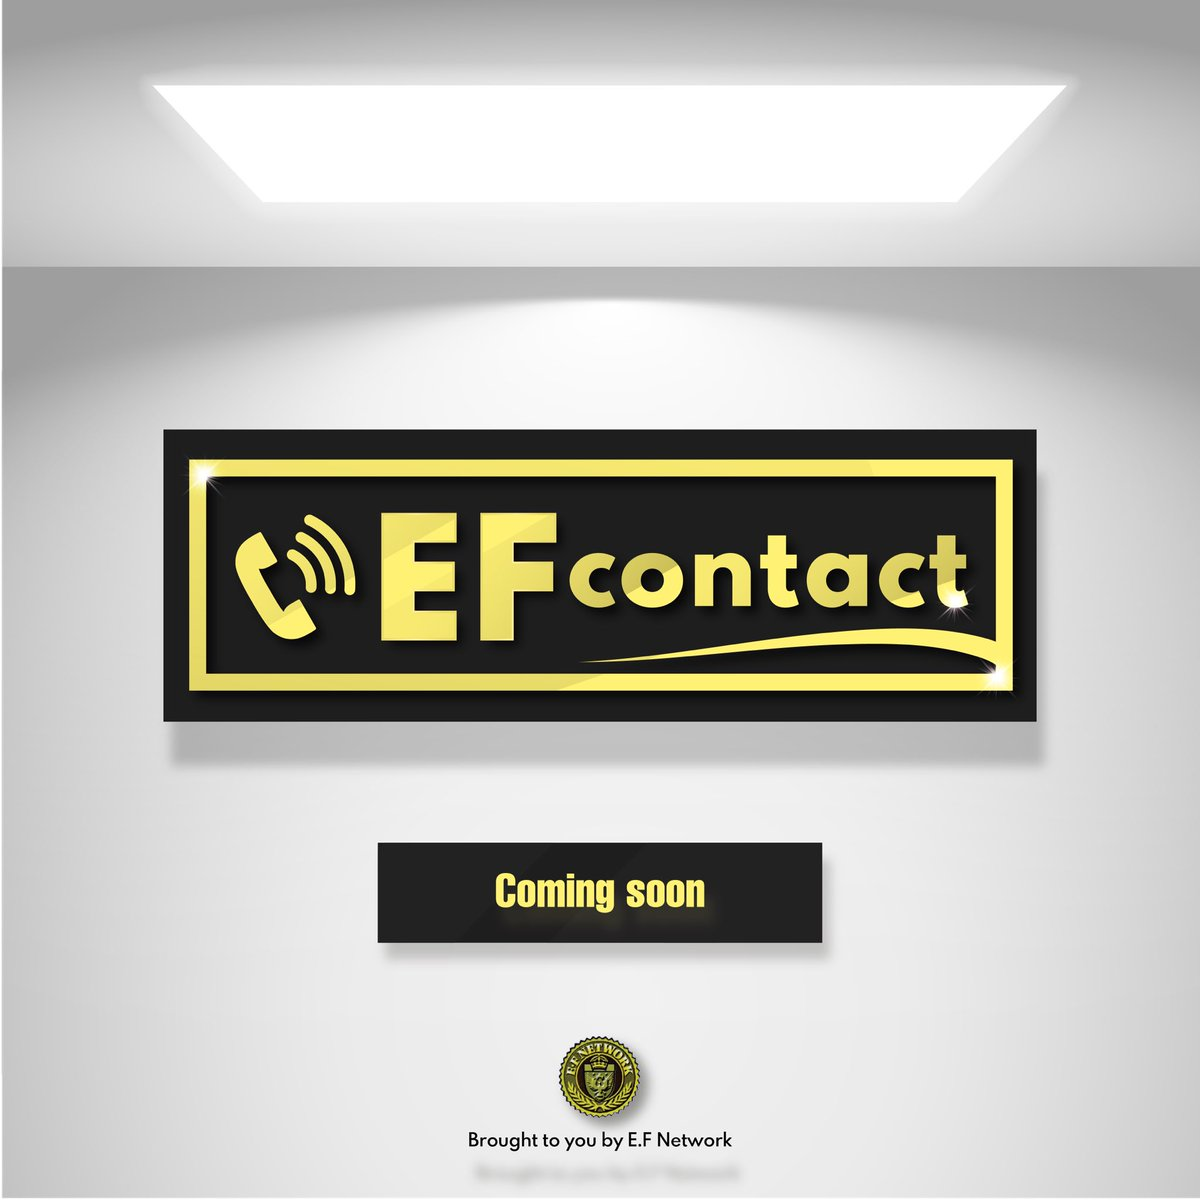 You need to register your okrika business with the @EfContact app when it's fully launched o.!!! It's features will be awesome.!!!  Just visit  #EFcontact #EFnetworkltd #online #thursdaymorning #thursdayvibes